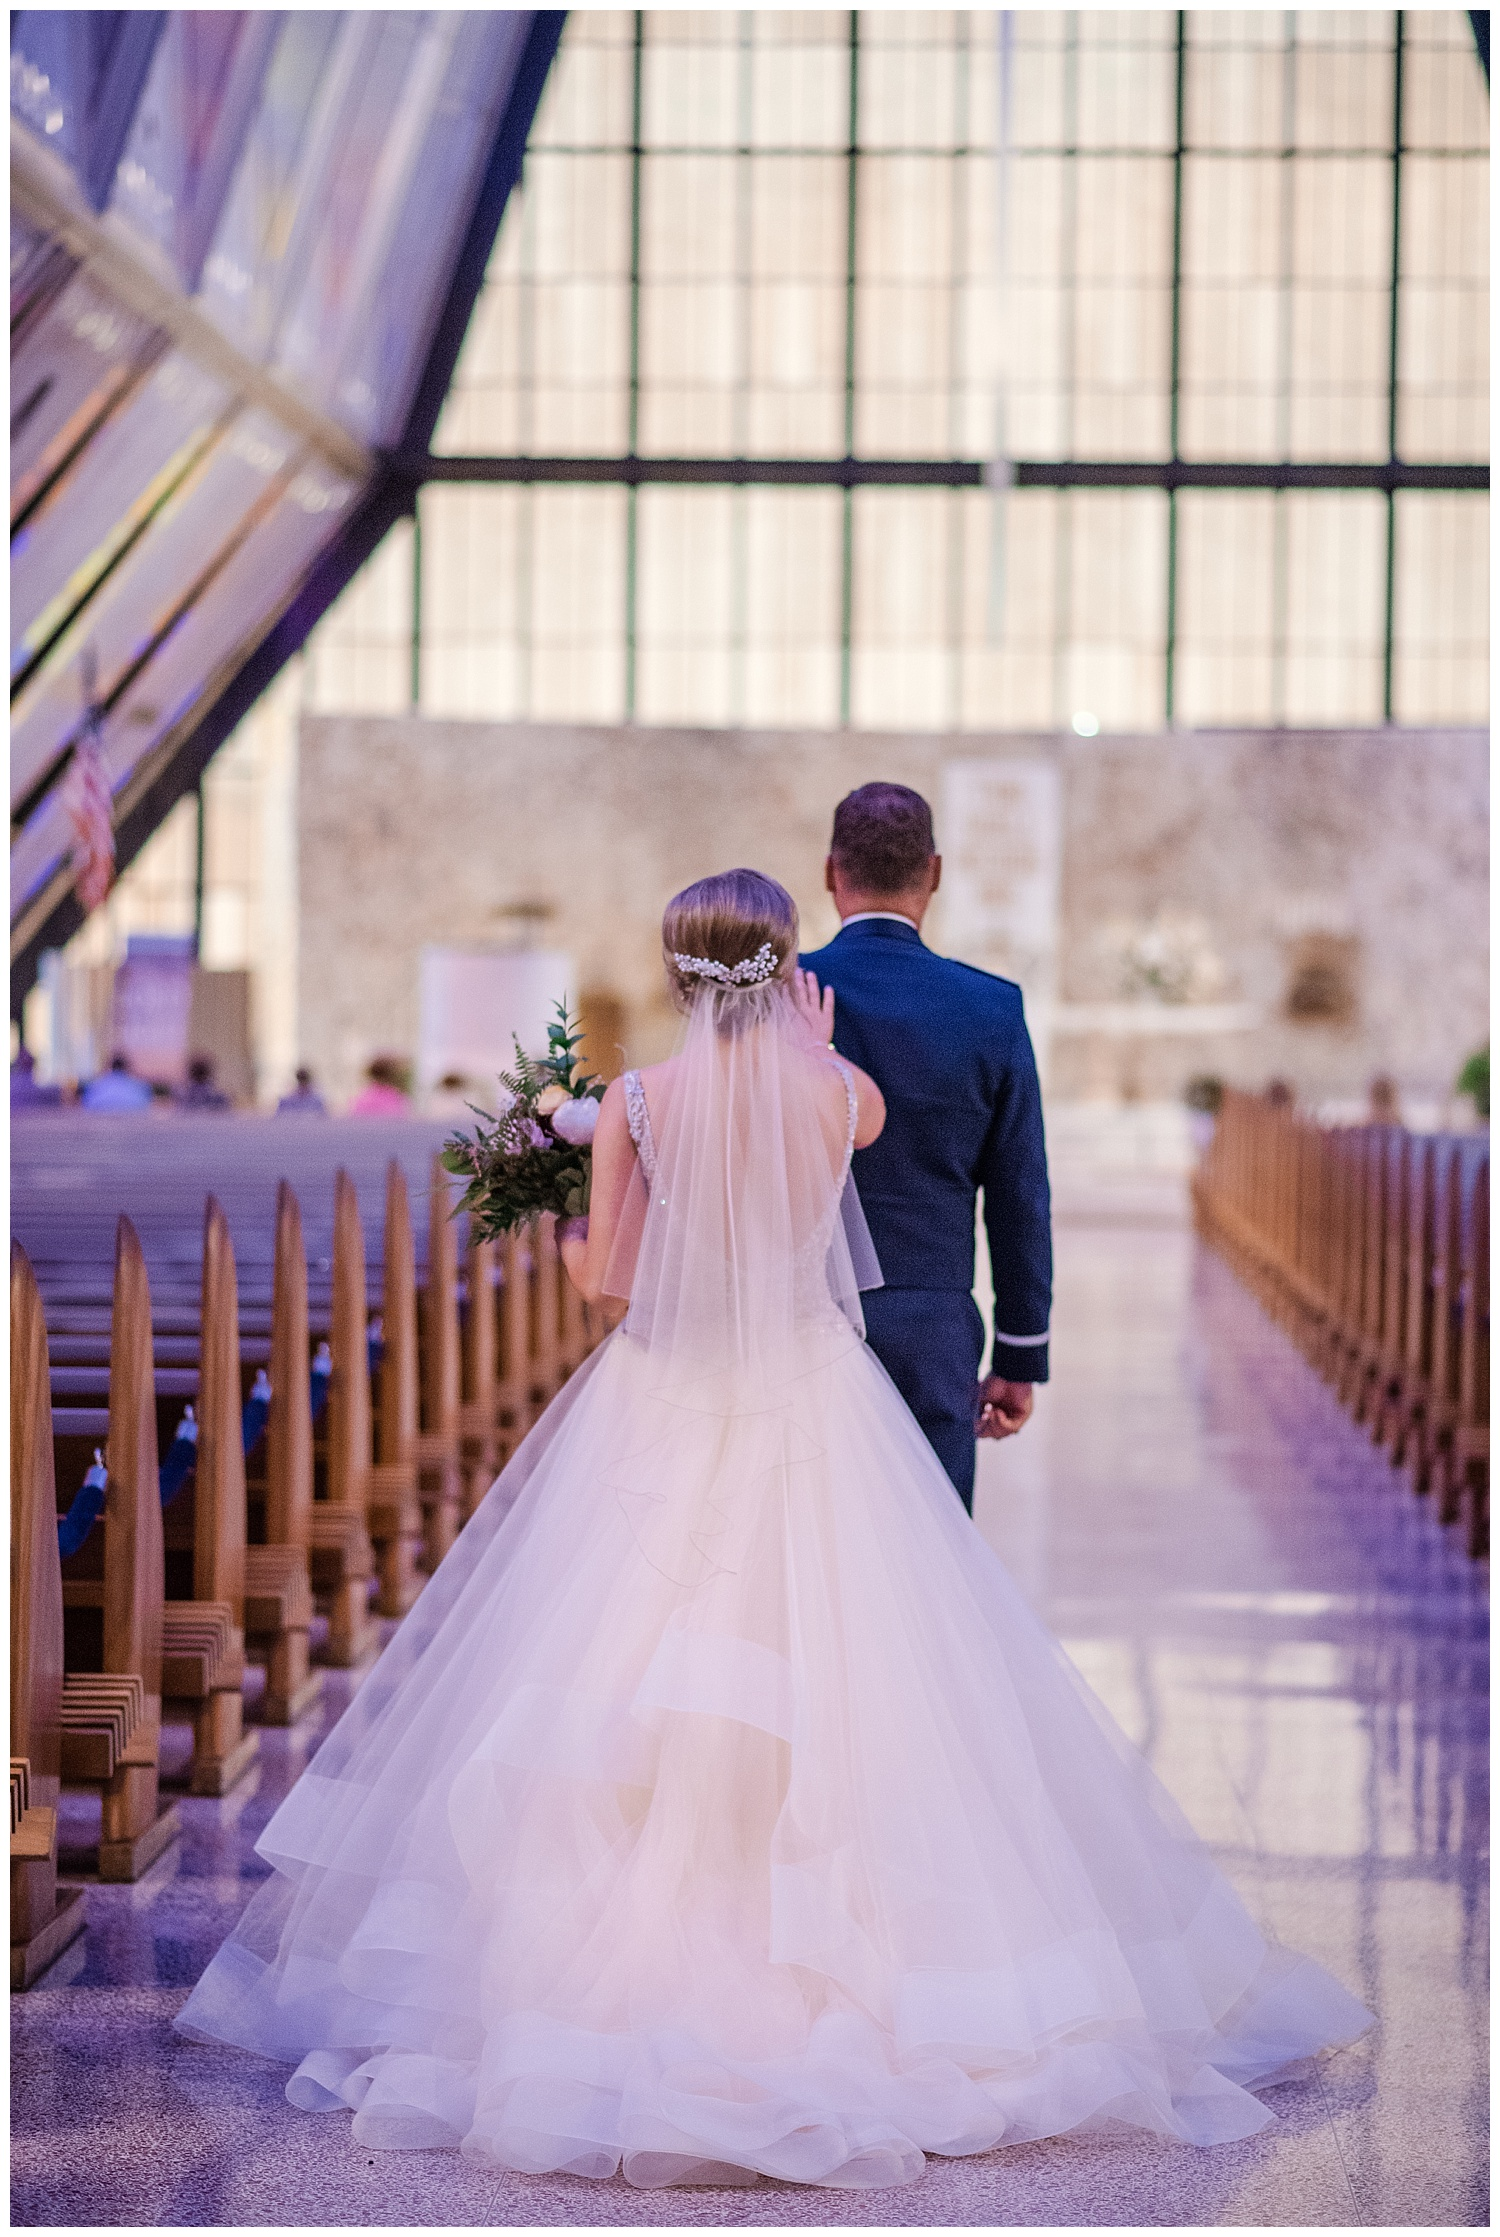 USAFA Chapel Wedding, Cadet Chapel Wedding, Colorado Springs Wedding Ceremony, Empty Chapel before Wedding, Stained Glass Chapel, Bride and her bridesmaids, Colorado Bride, Tulle Wedding Dress, Sparkly Bridesmaids Dresses, First Look, Colorado Wedding Photographer, Denver Wedding Photographer, Denver Elopement Photographer, Colorado Elopement Photographer, Rocky Mountain Wedding Photographer, Downtown Denver Photographer